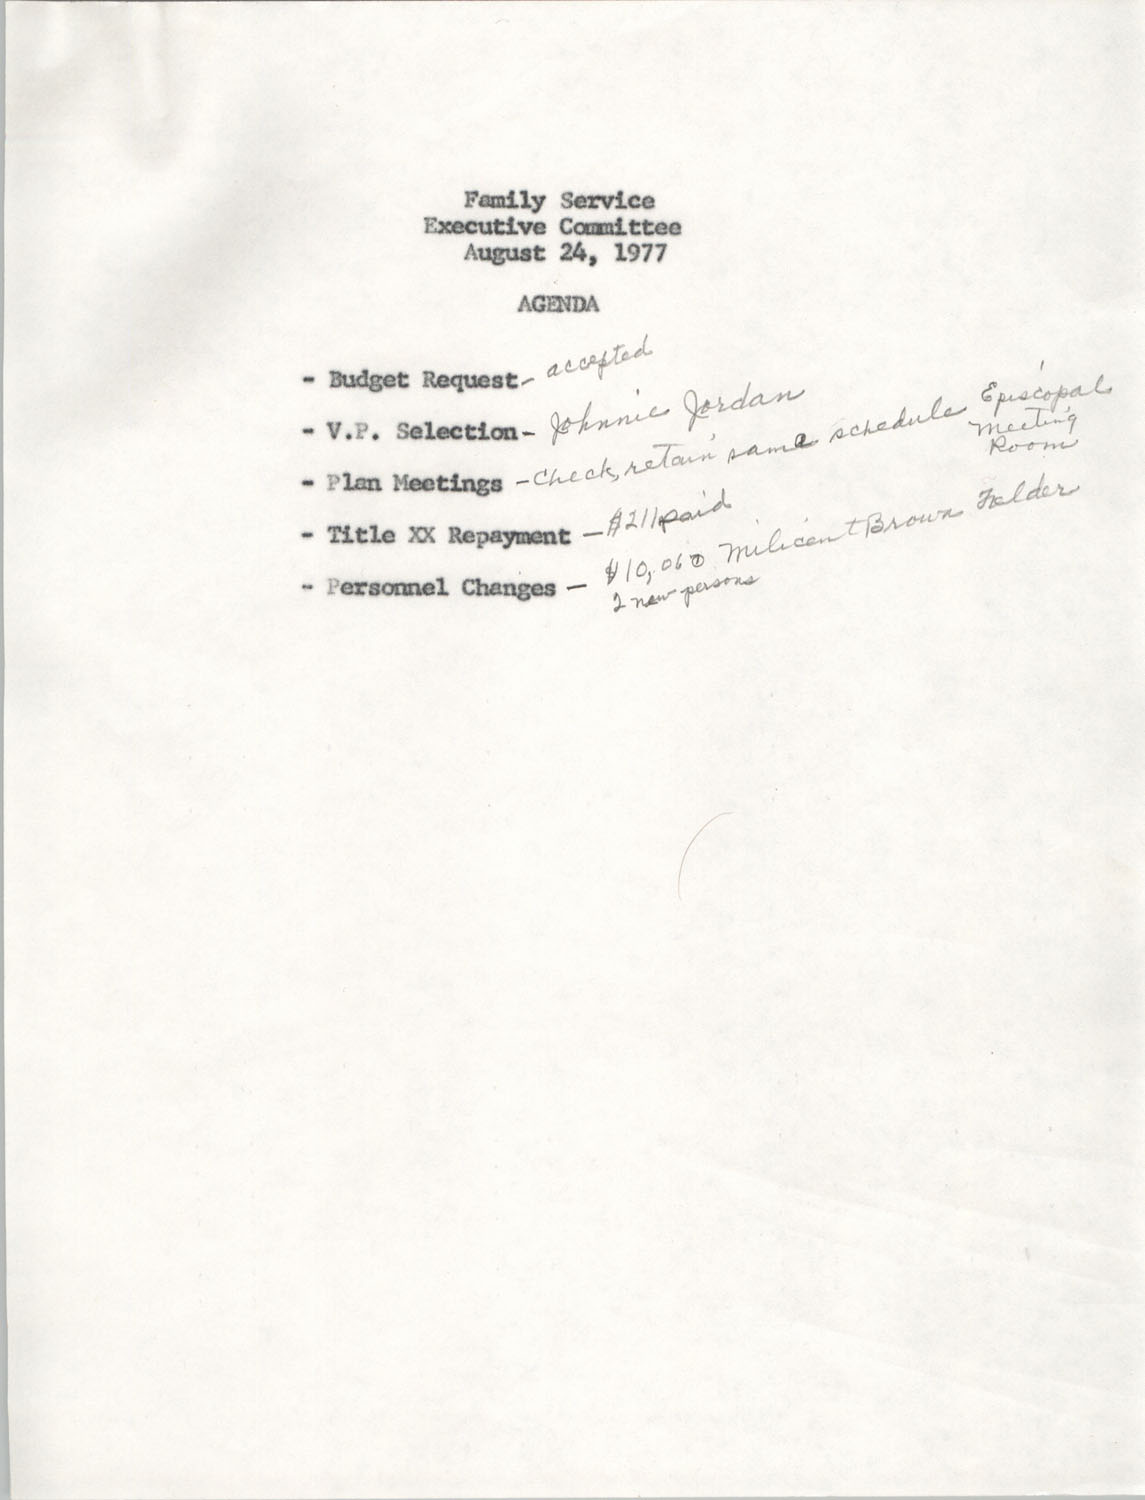 Agenda, Family Service Executive Committee, August 24, 1977